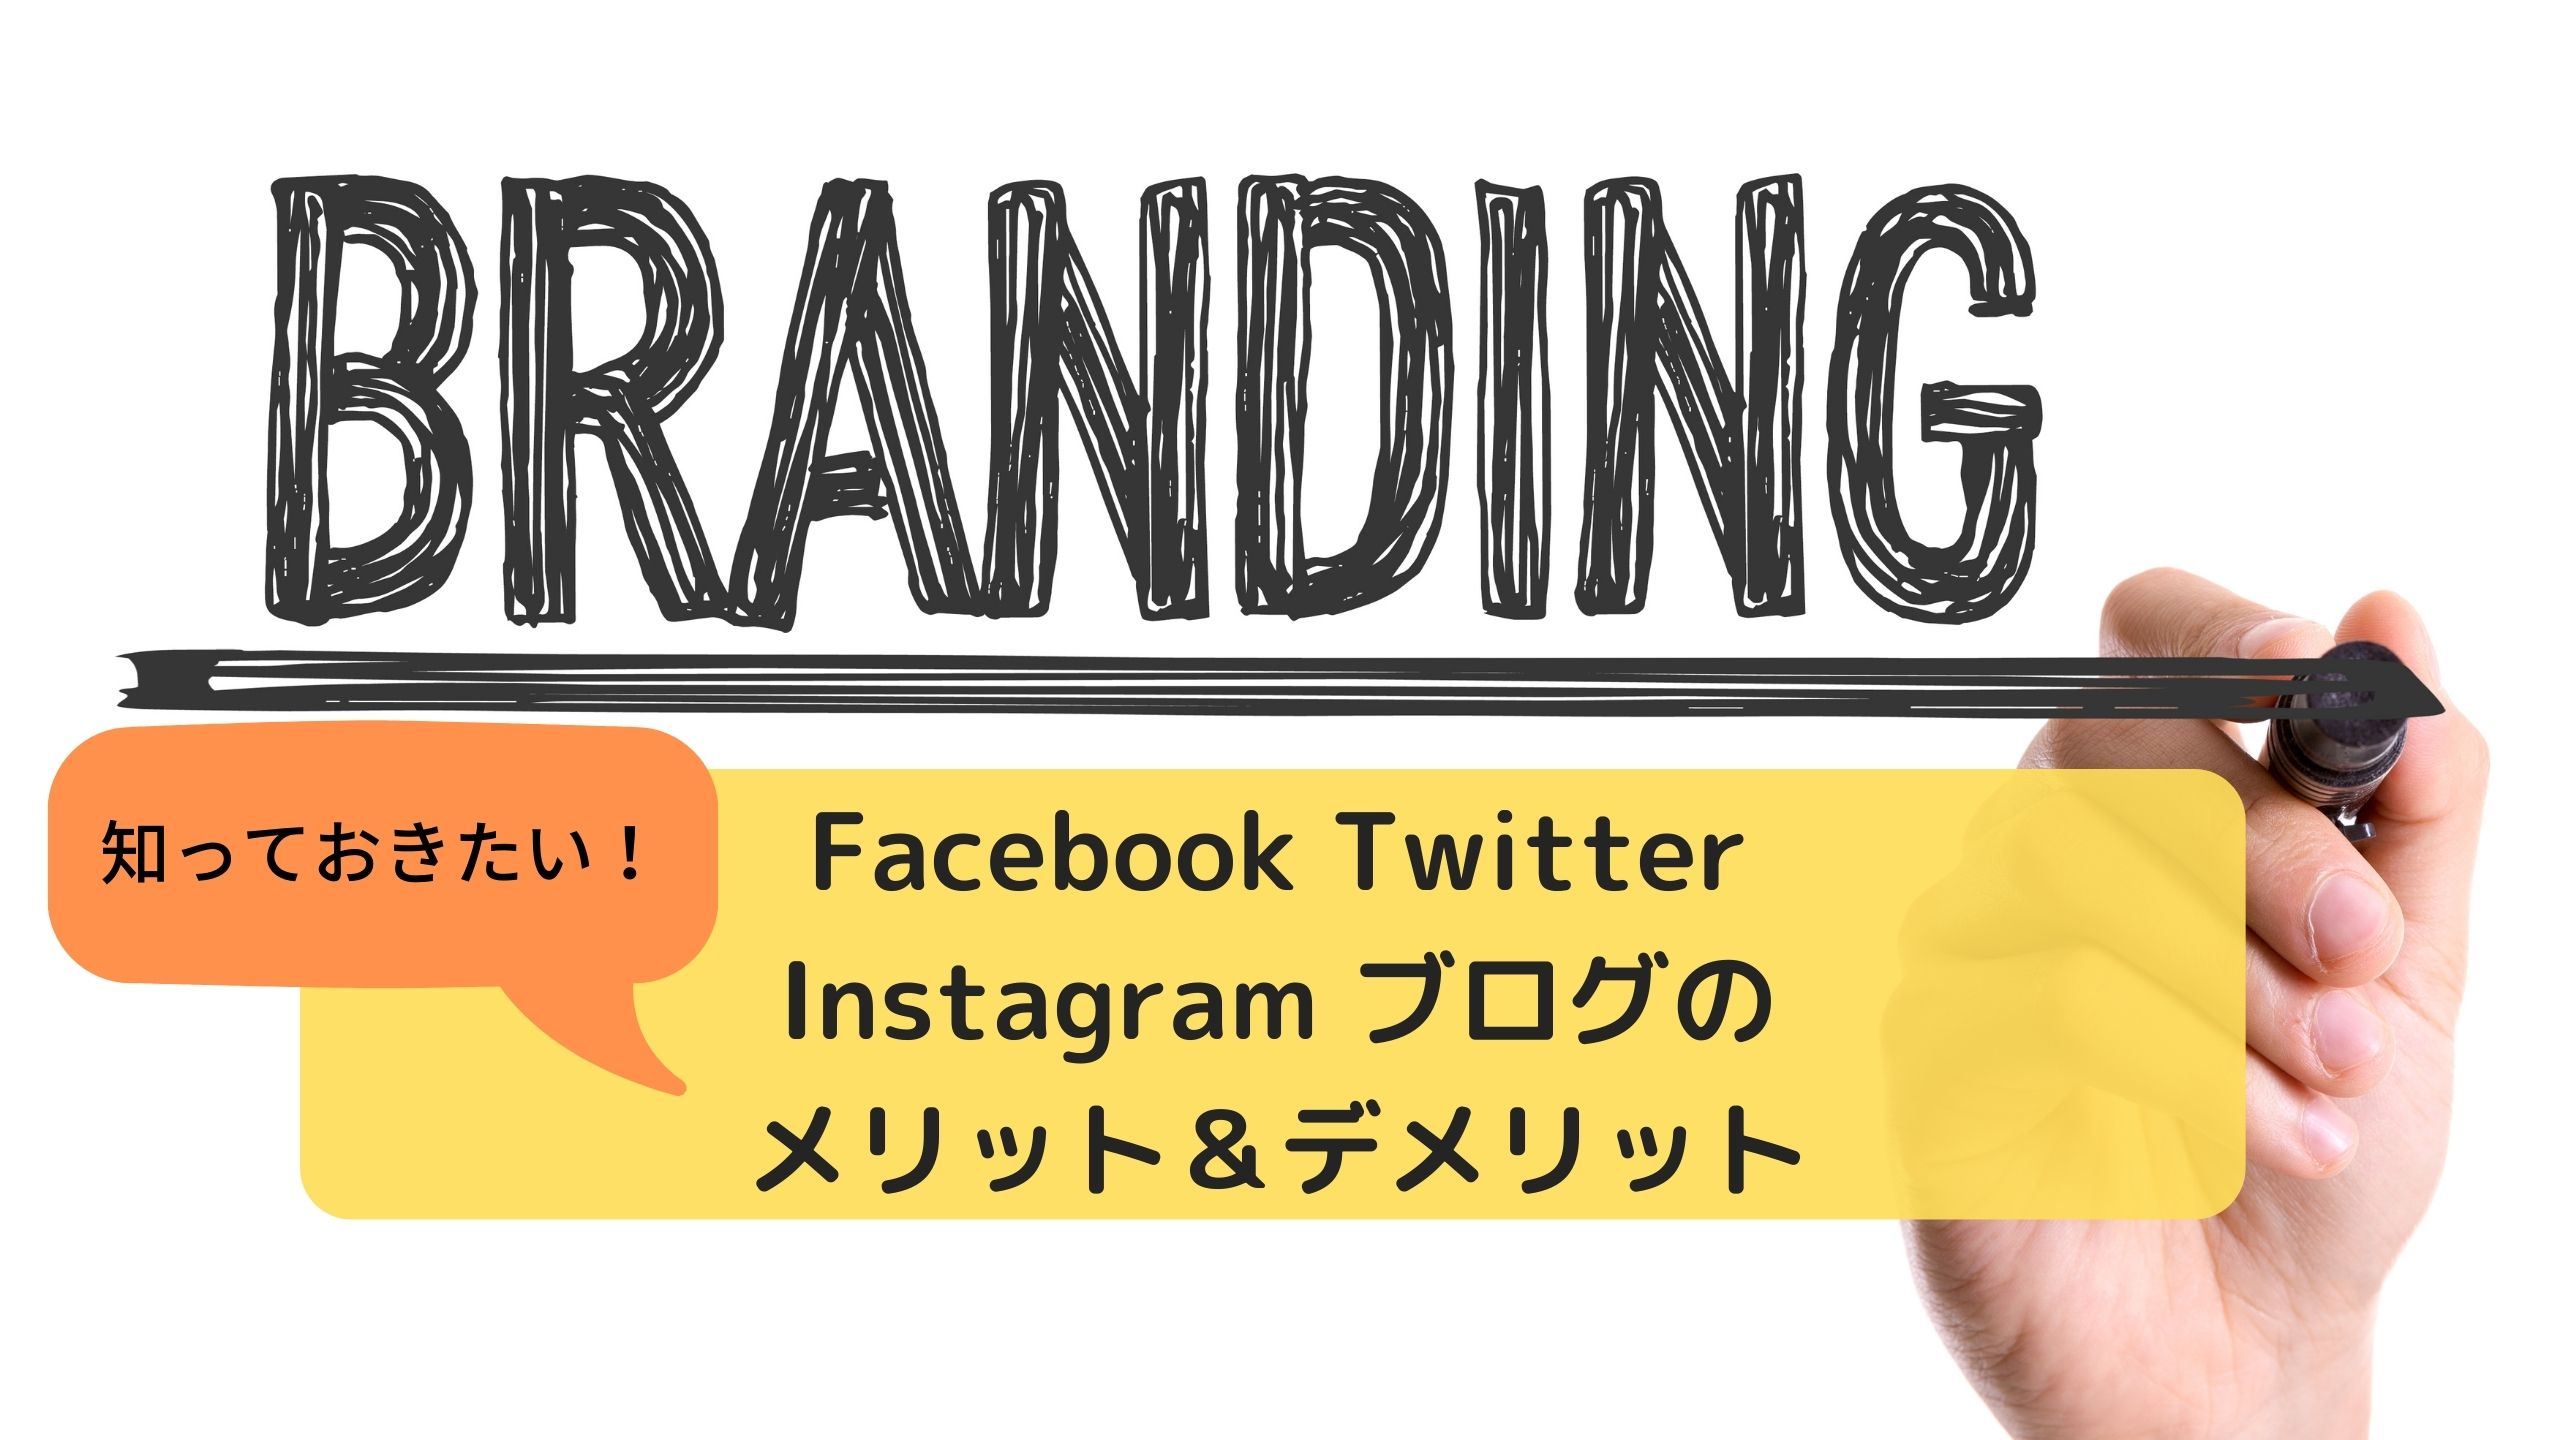 Facebook・Twitter・Instagram・ブログのメリットデメリット